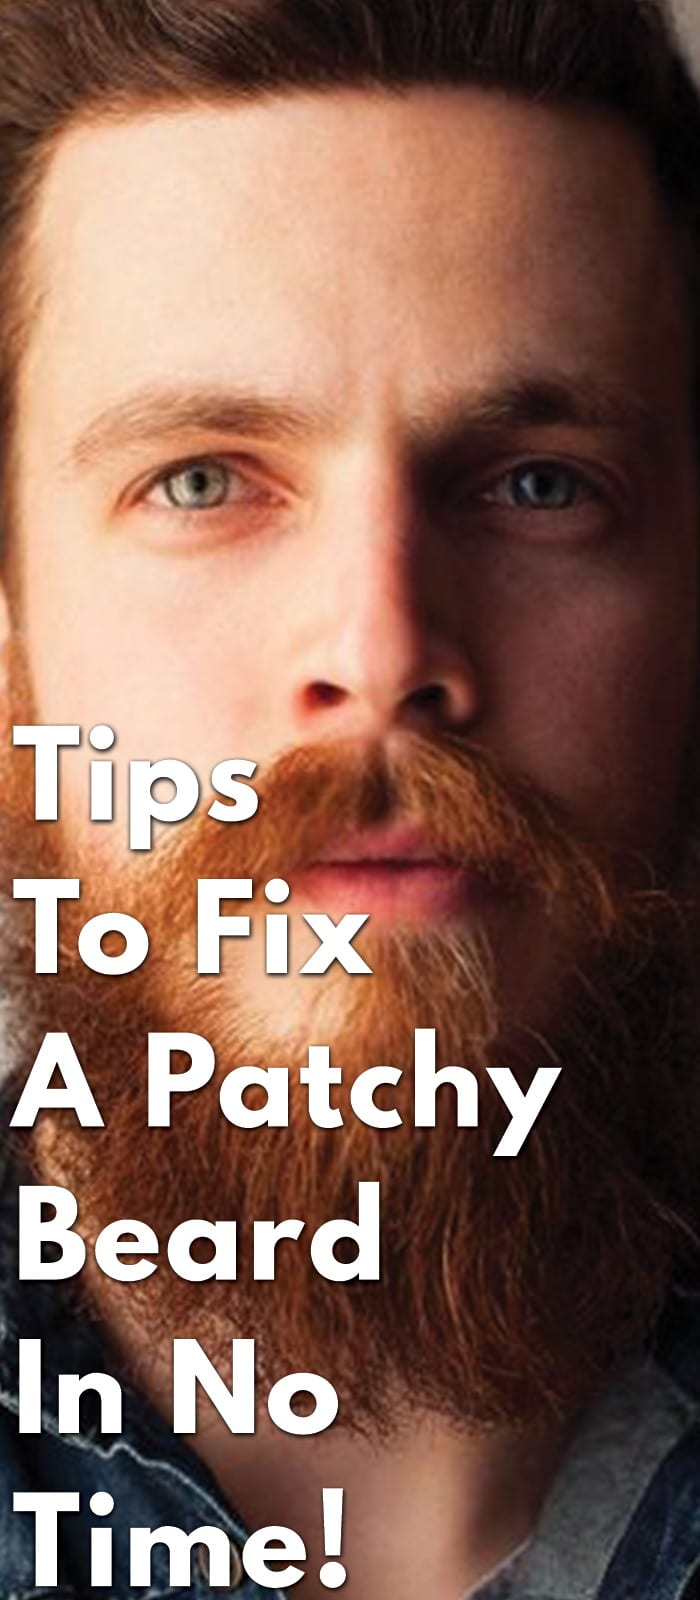 Tips-To-Fix-A-Patchy-Beard-In-No-Time!.